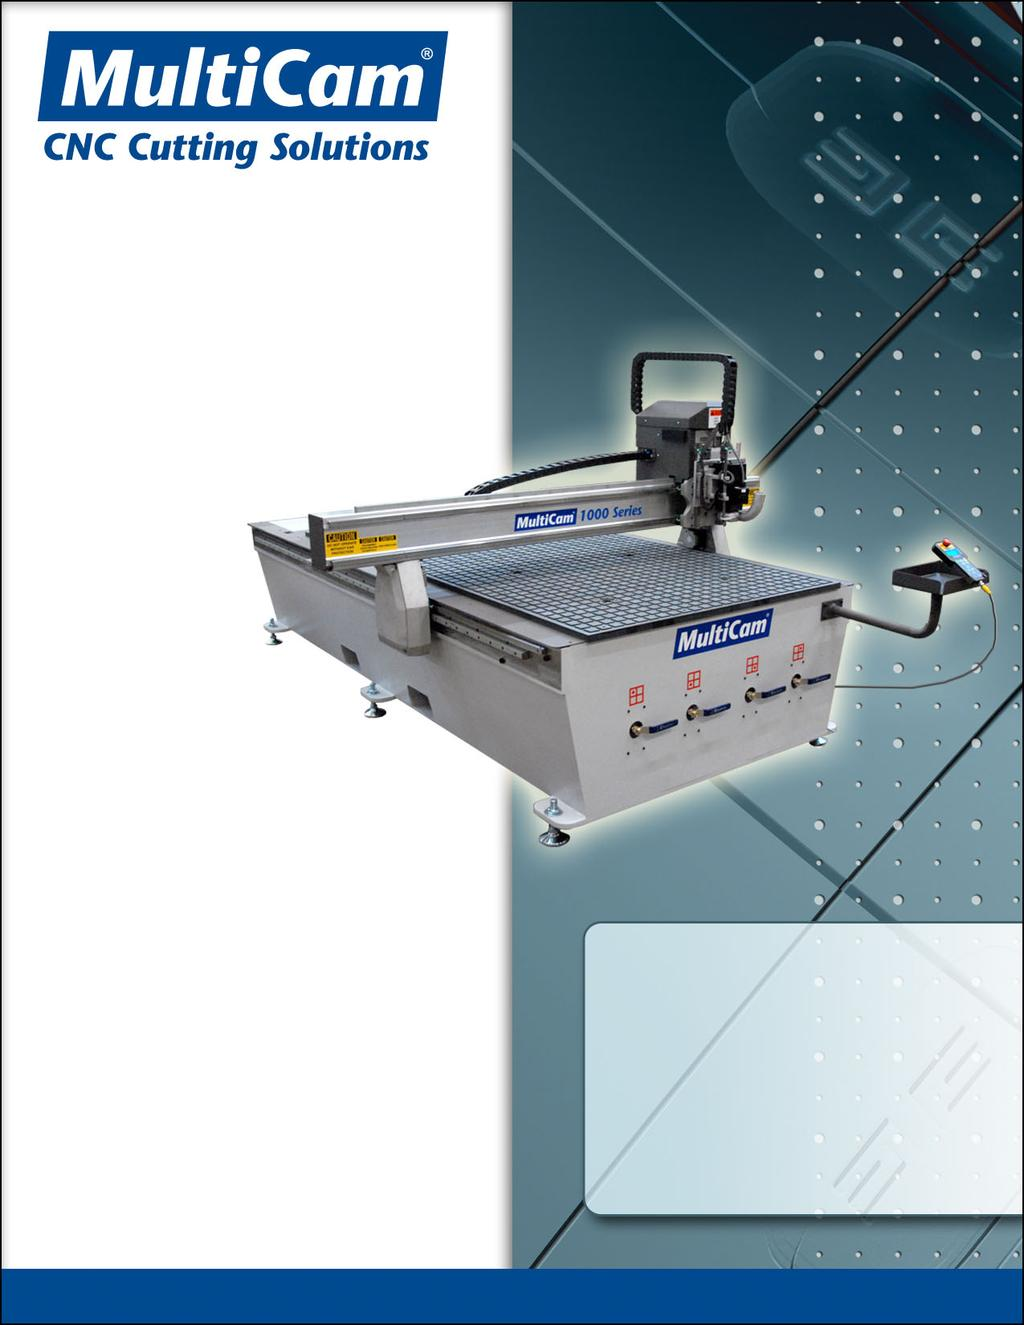 MultiCam 1000 Series CNC Router Feature and Specification Guide Maximum Flexibility Made Affordable!